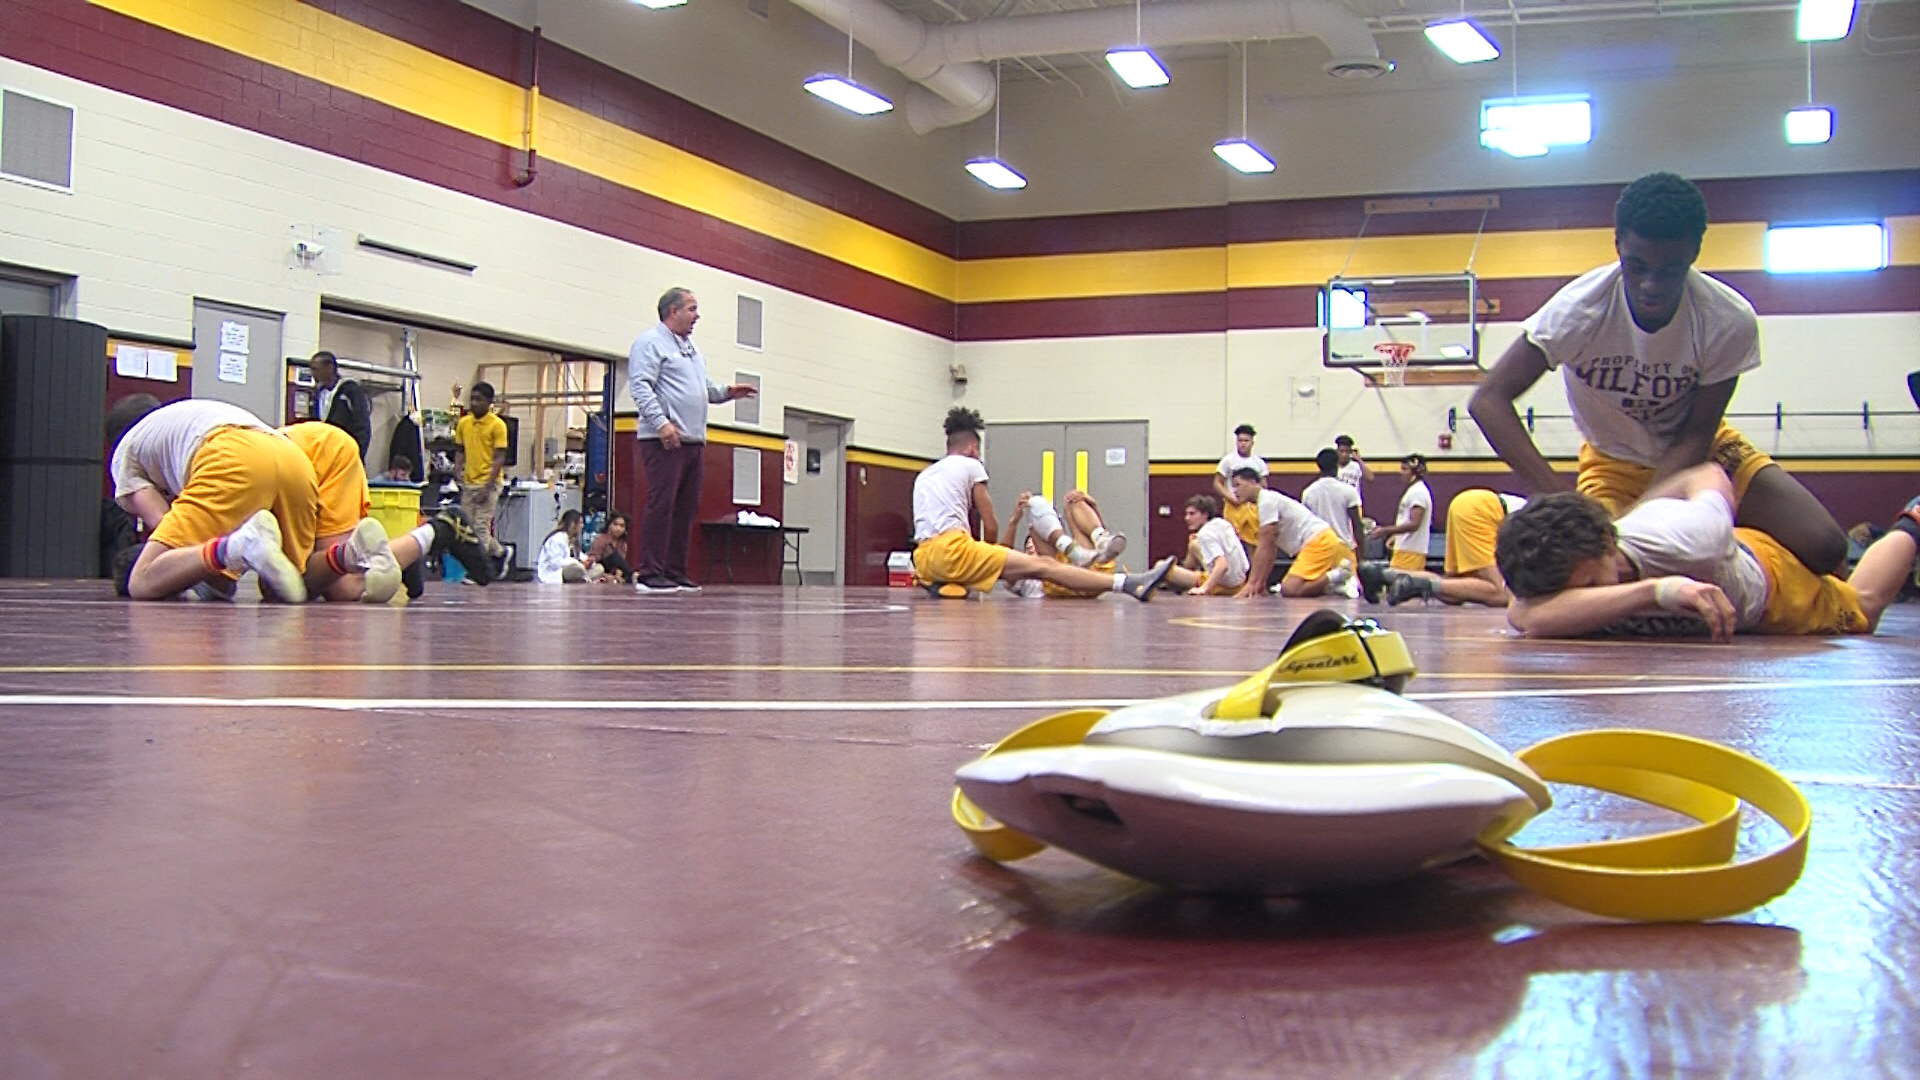 A look at the dominant Milford Bucs Wrestling team and their Coach….Don Parsley